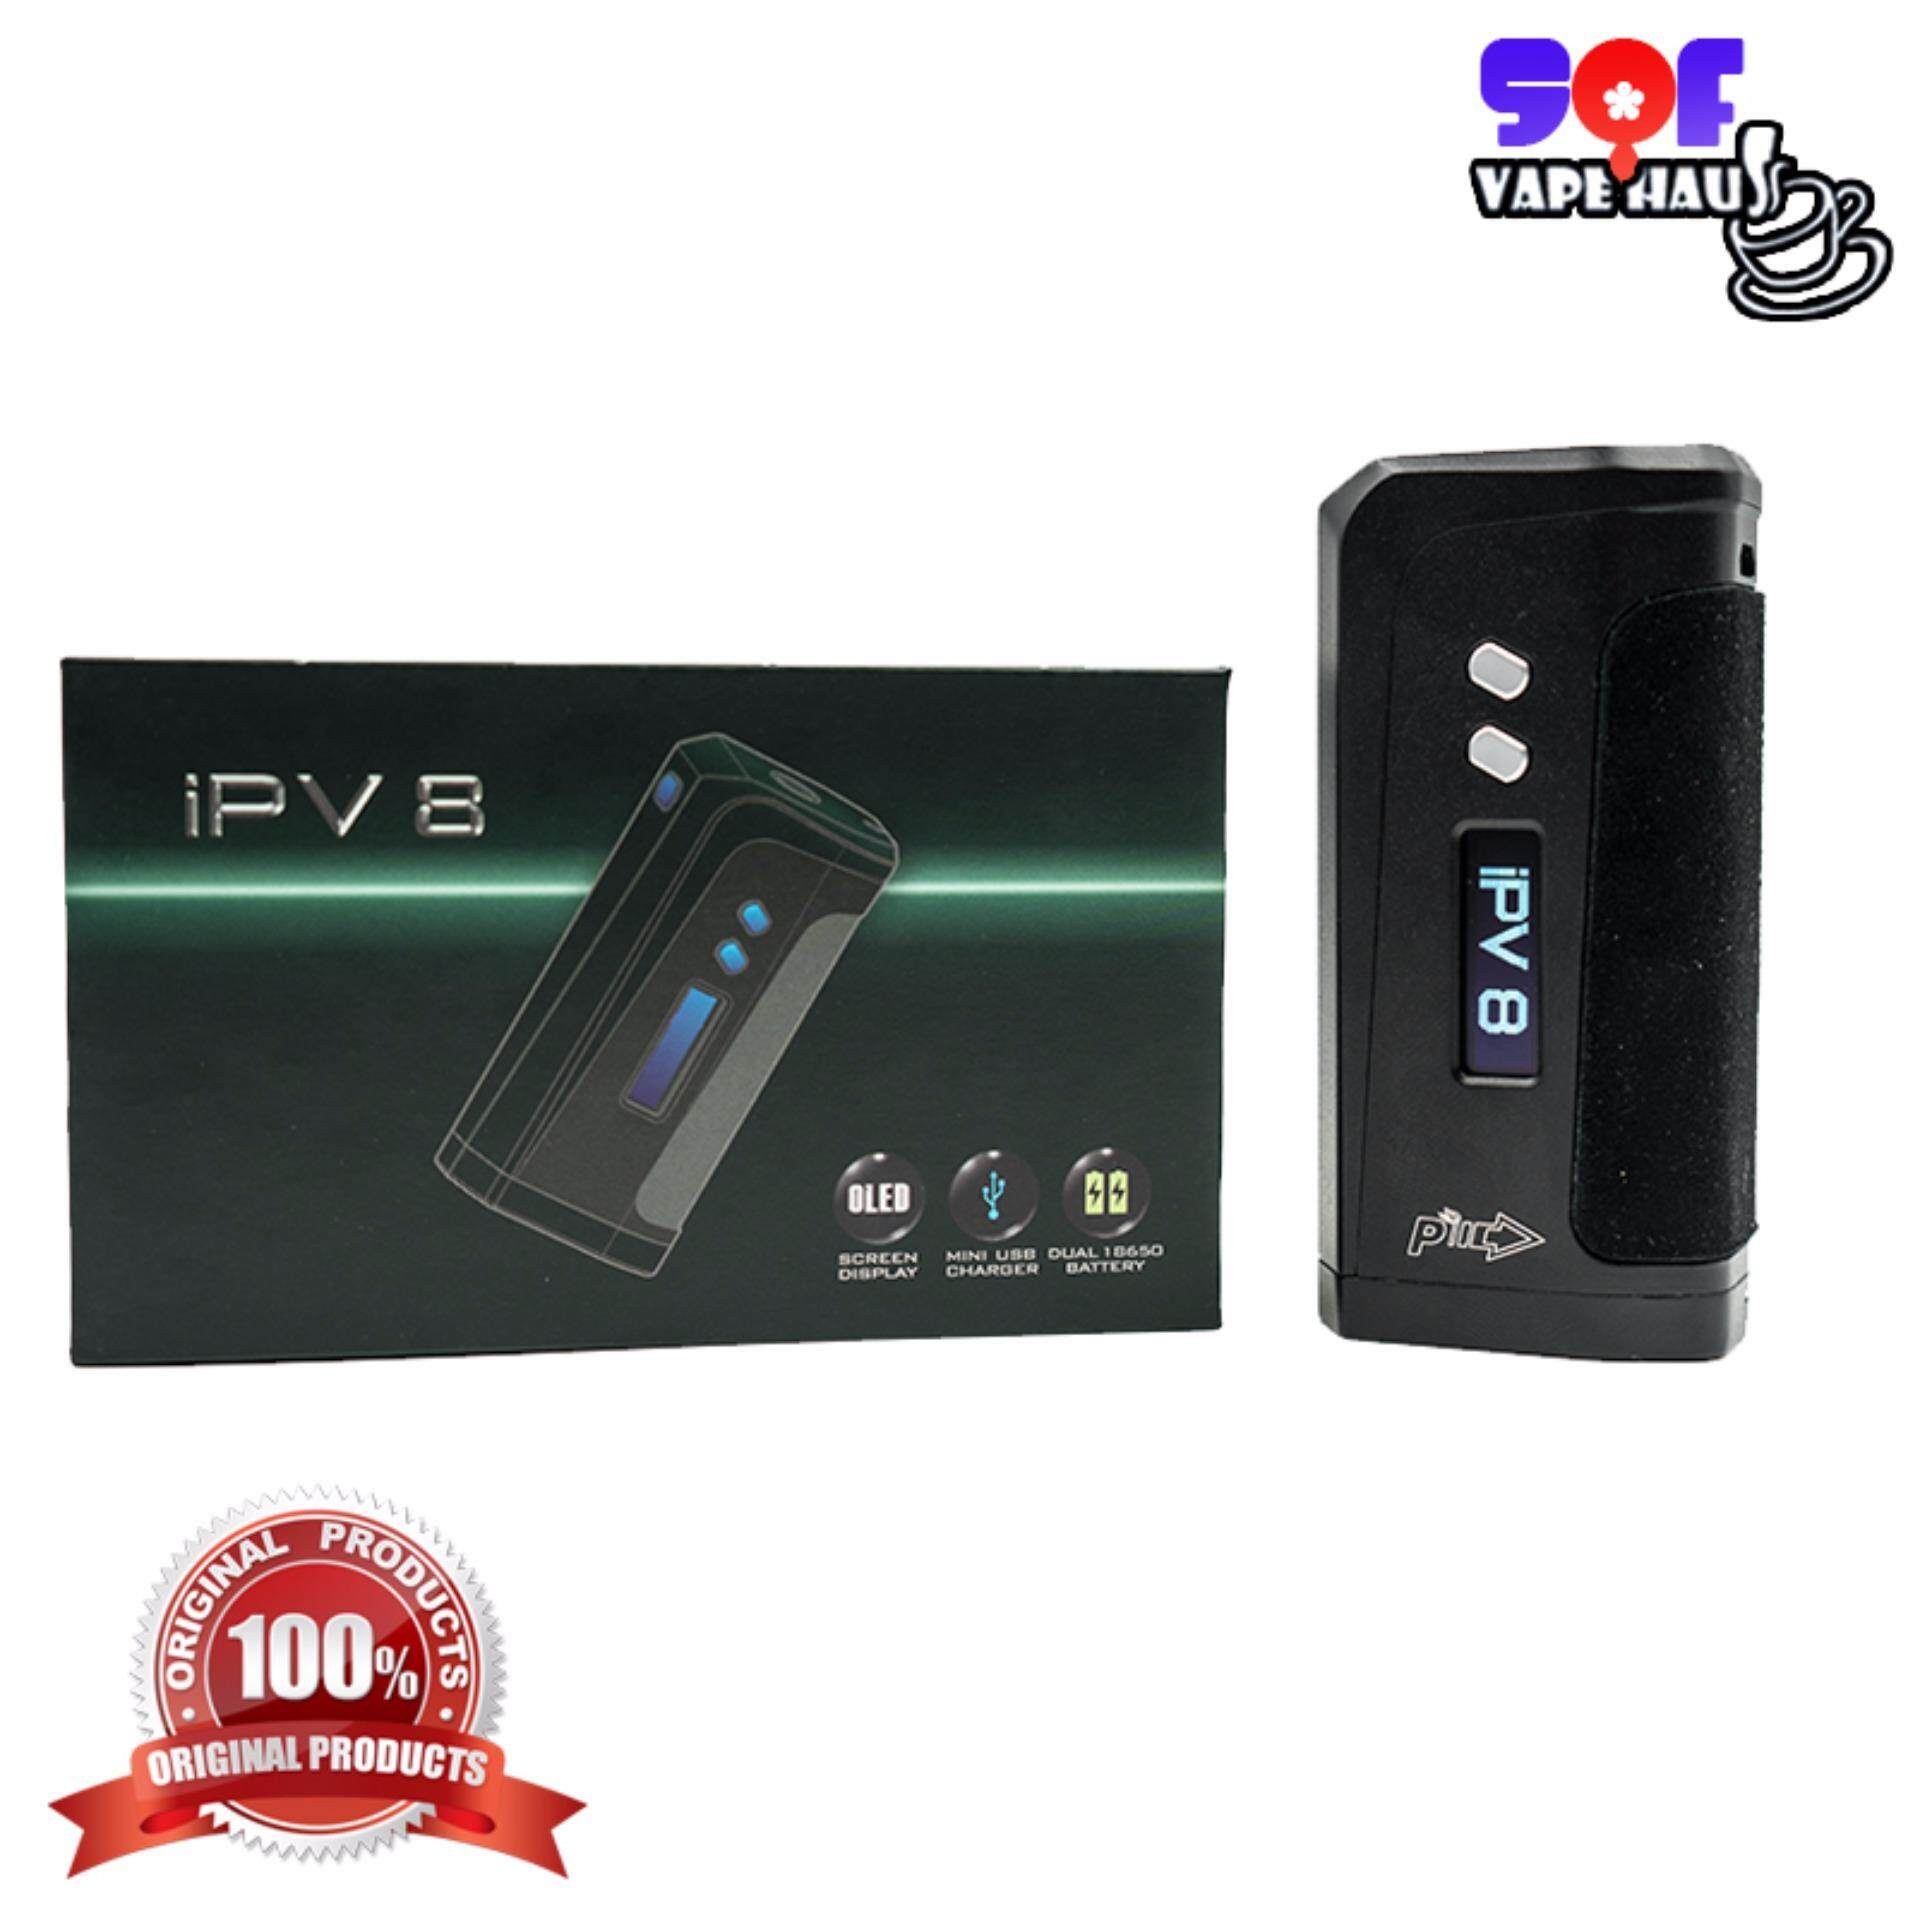 IPV 8 YIHi 330 SX by Pioneer4you 230w X1 NEW!!! Black or Silver